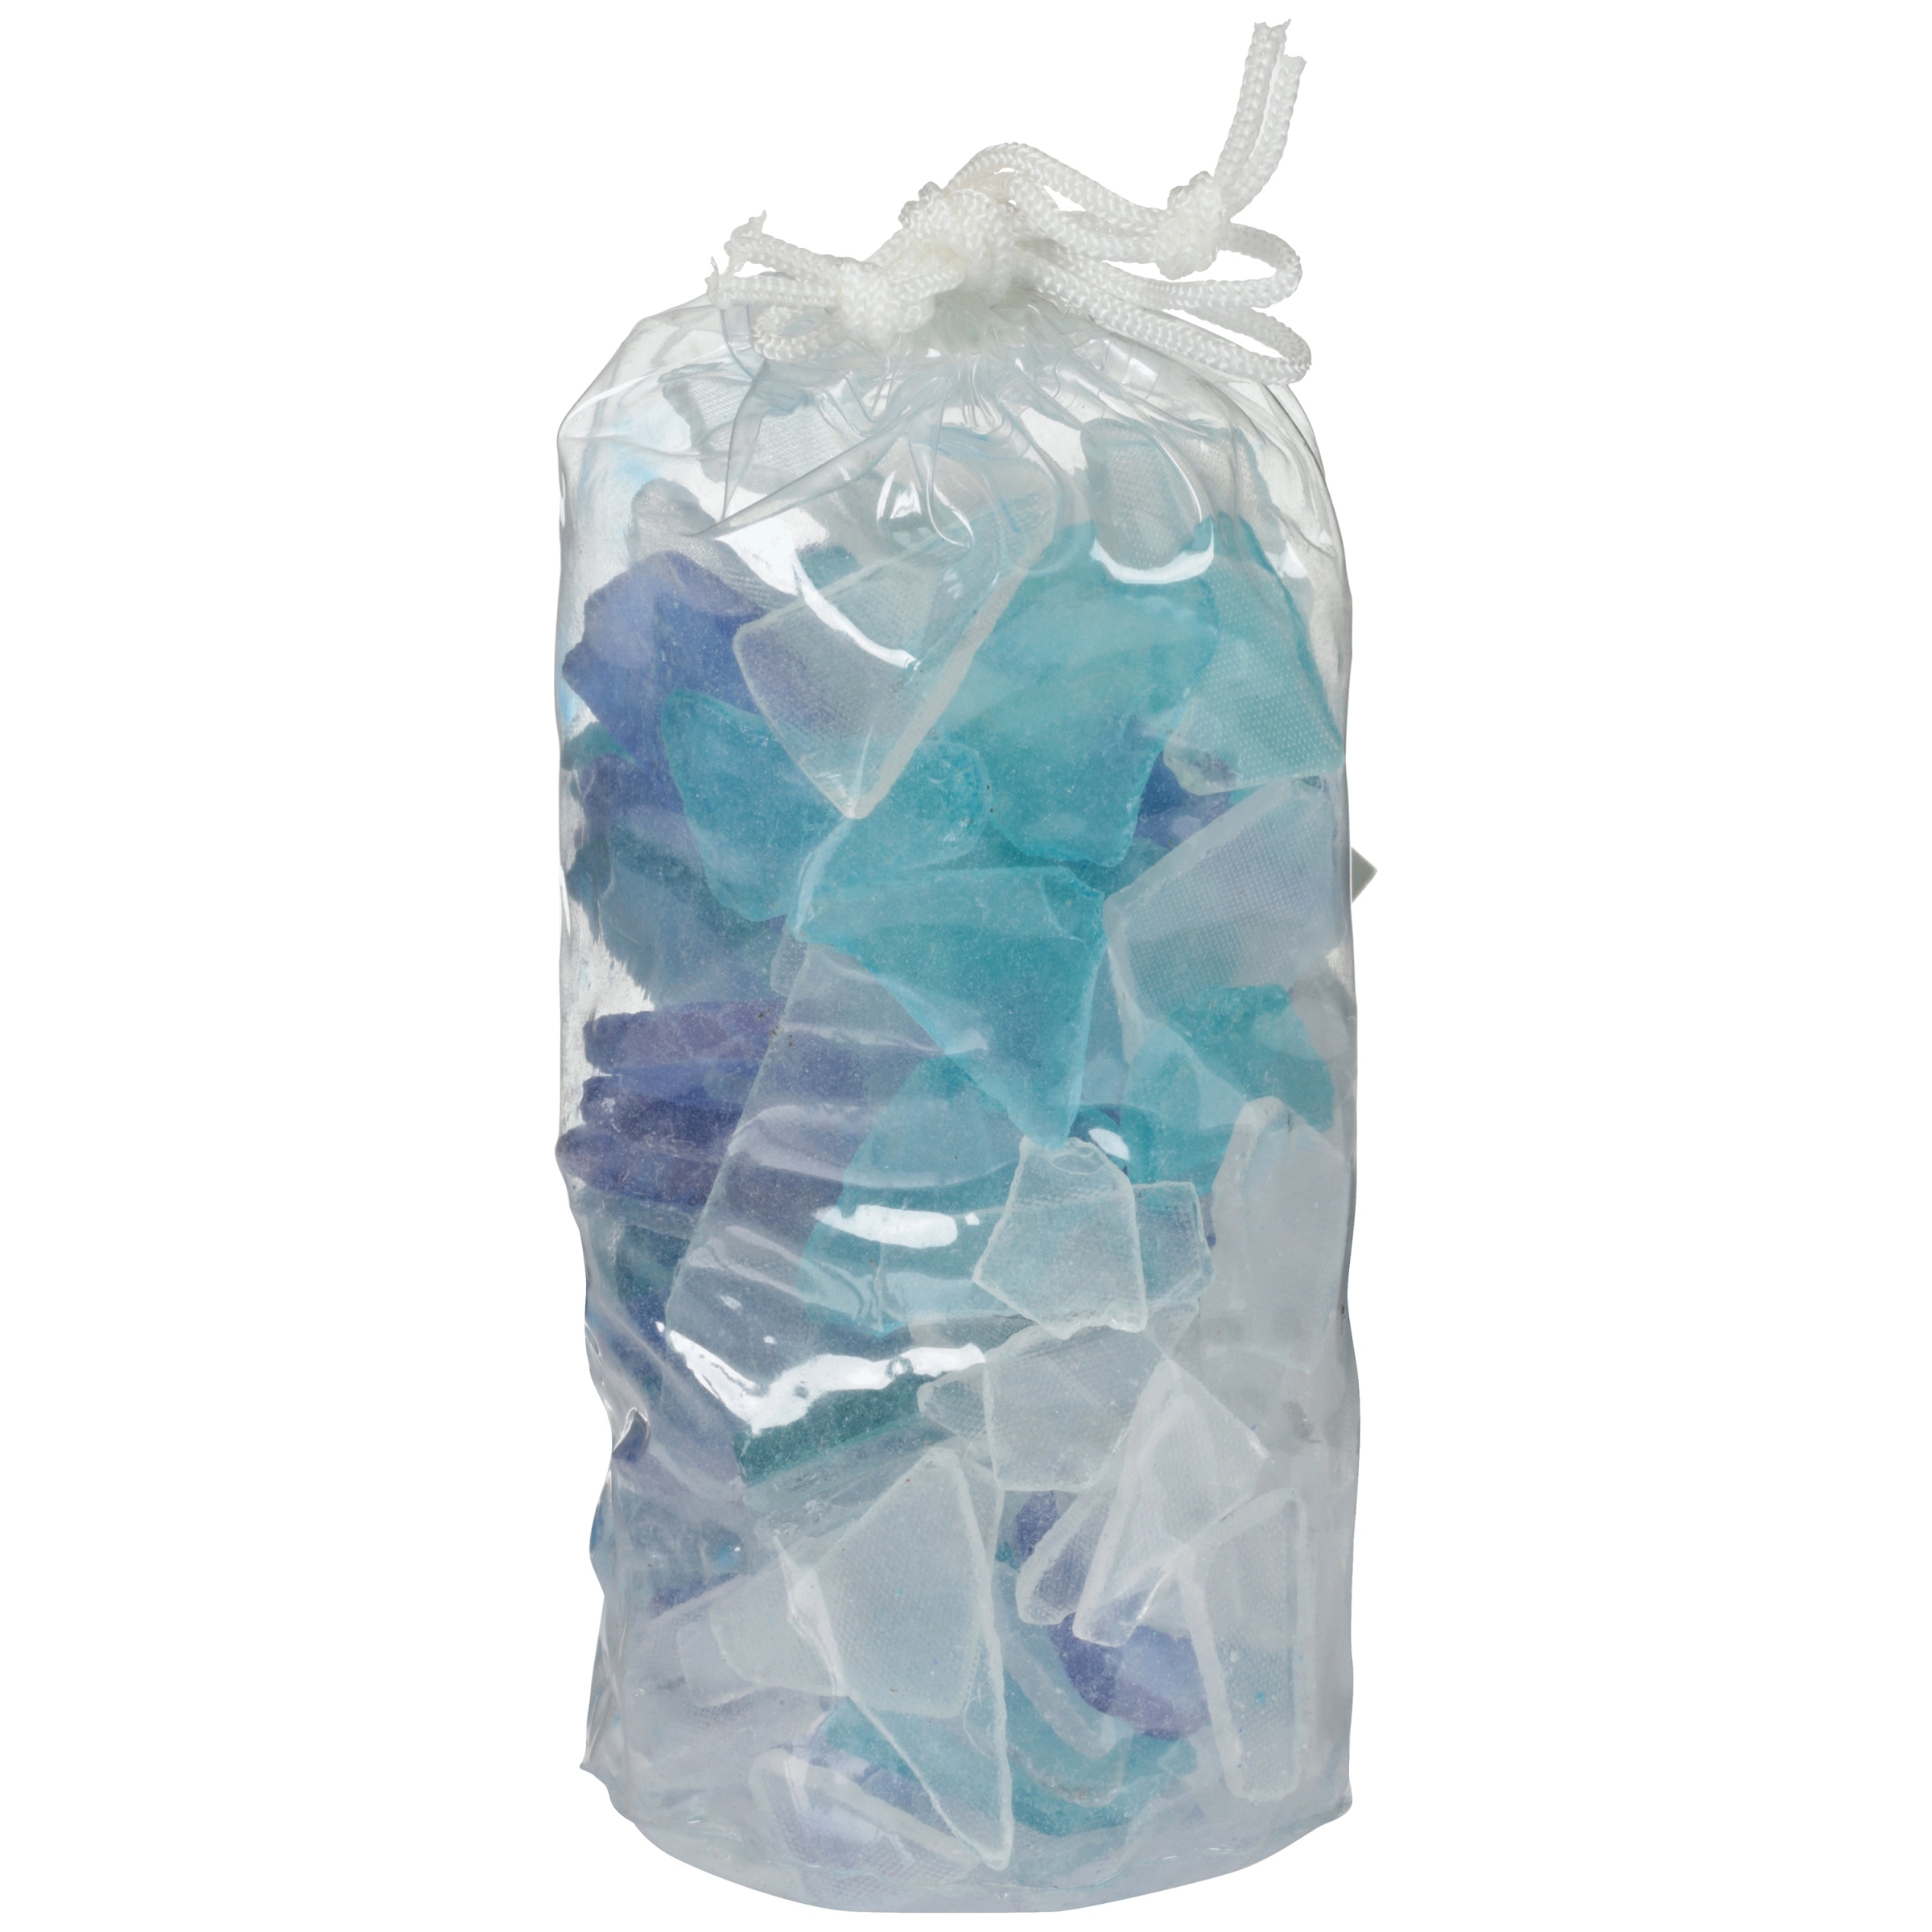 Akasha ocean sea glass 34 oz bag Beach Décor